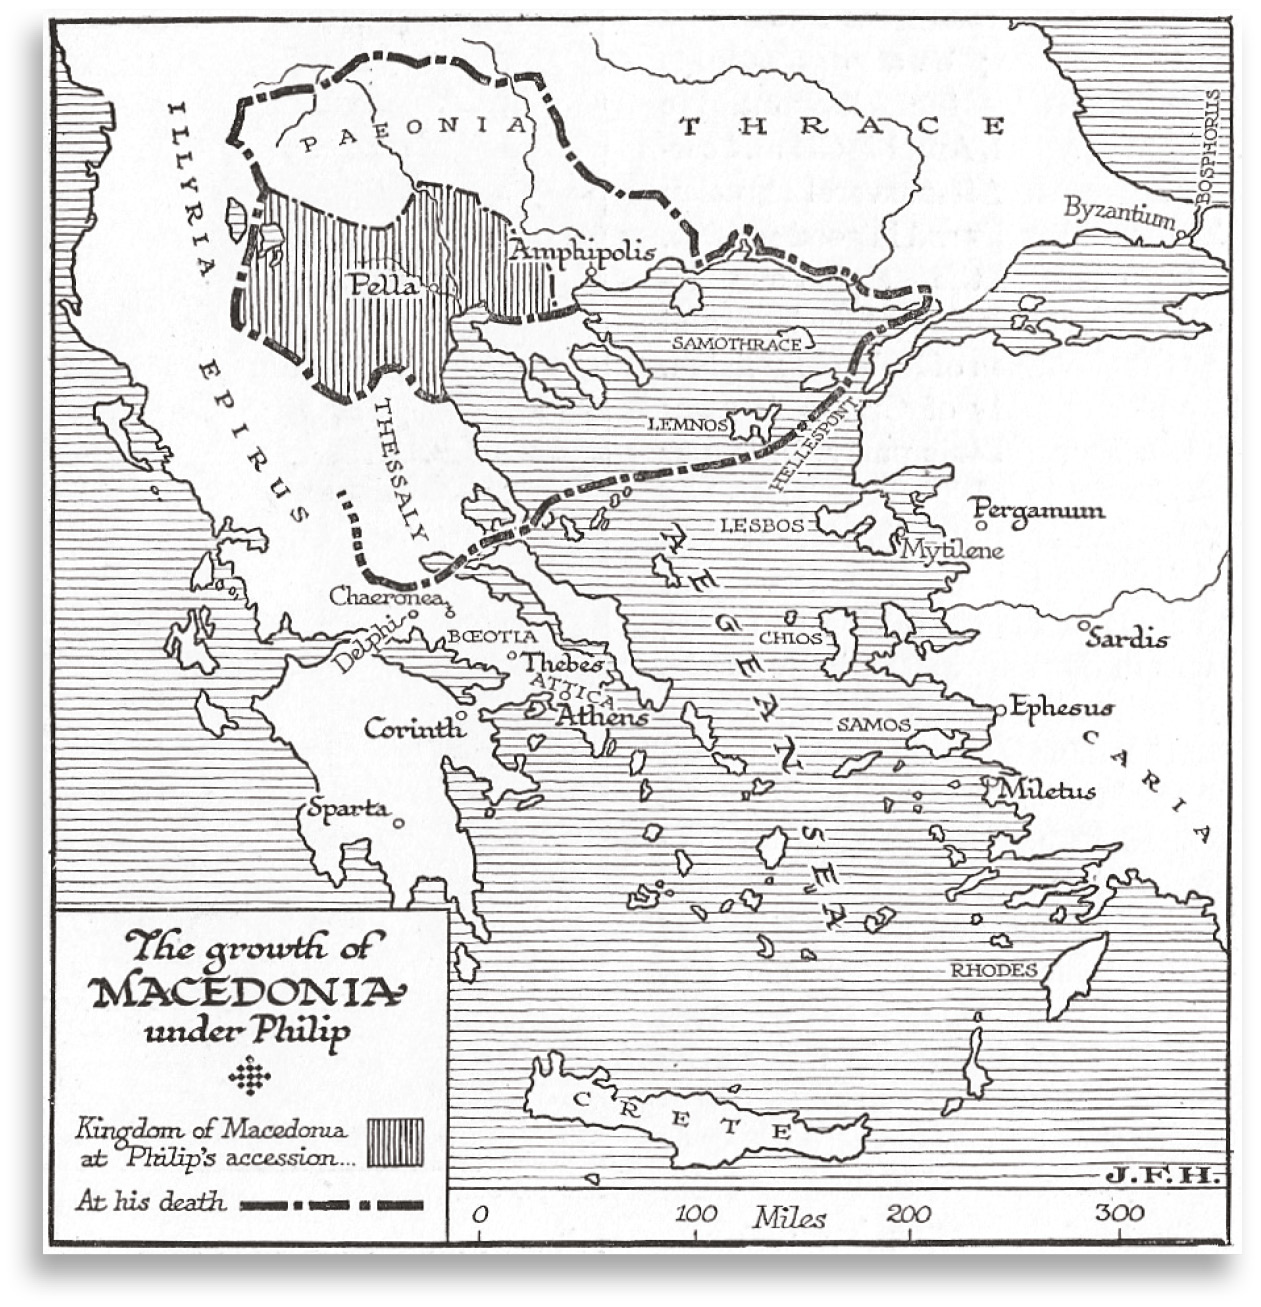 RIGHT Map showing the conquests of Philip of Macedon.